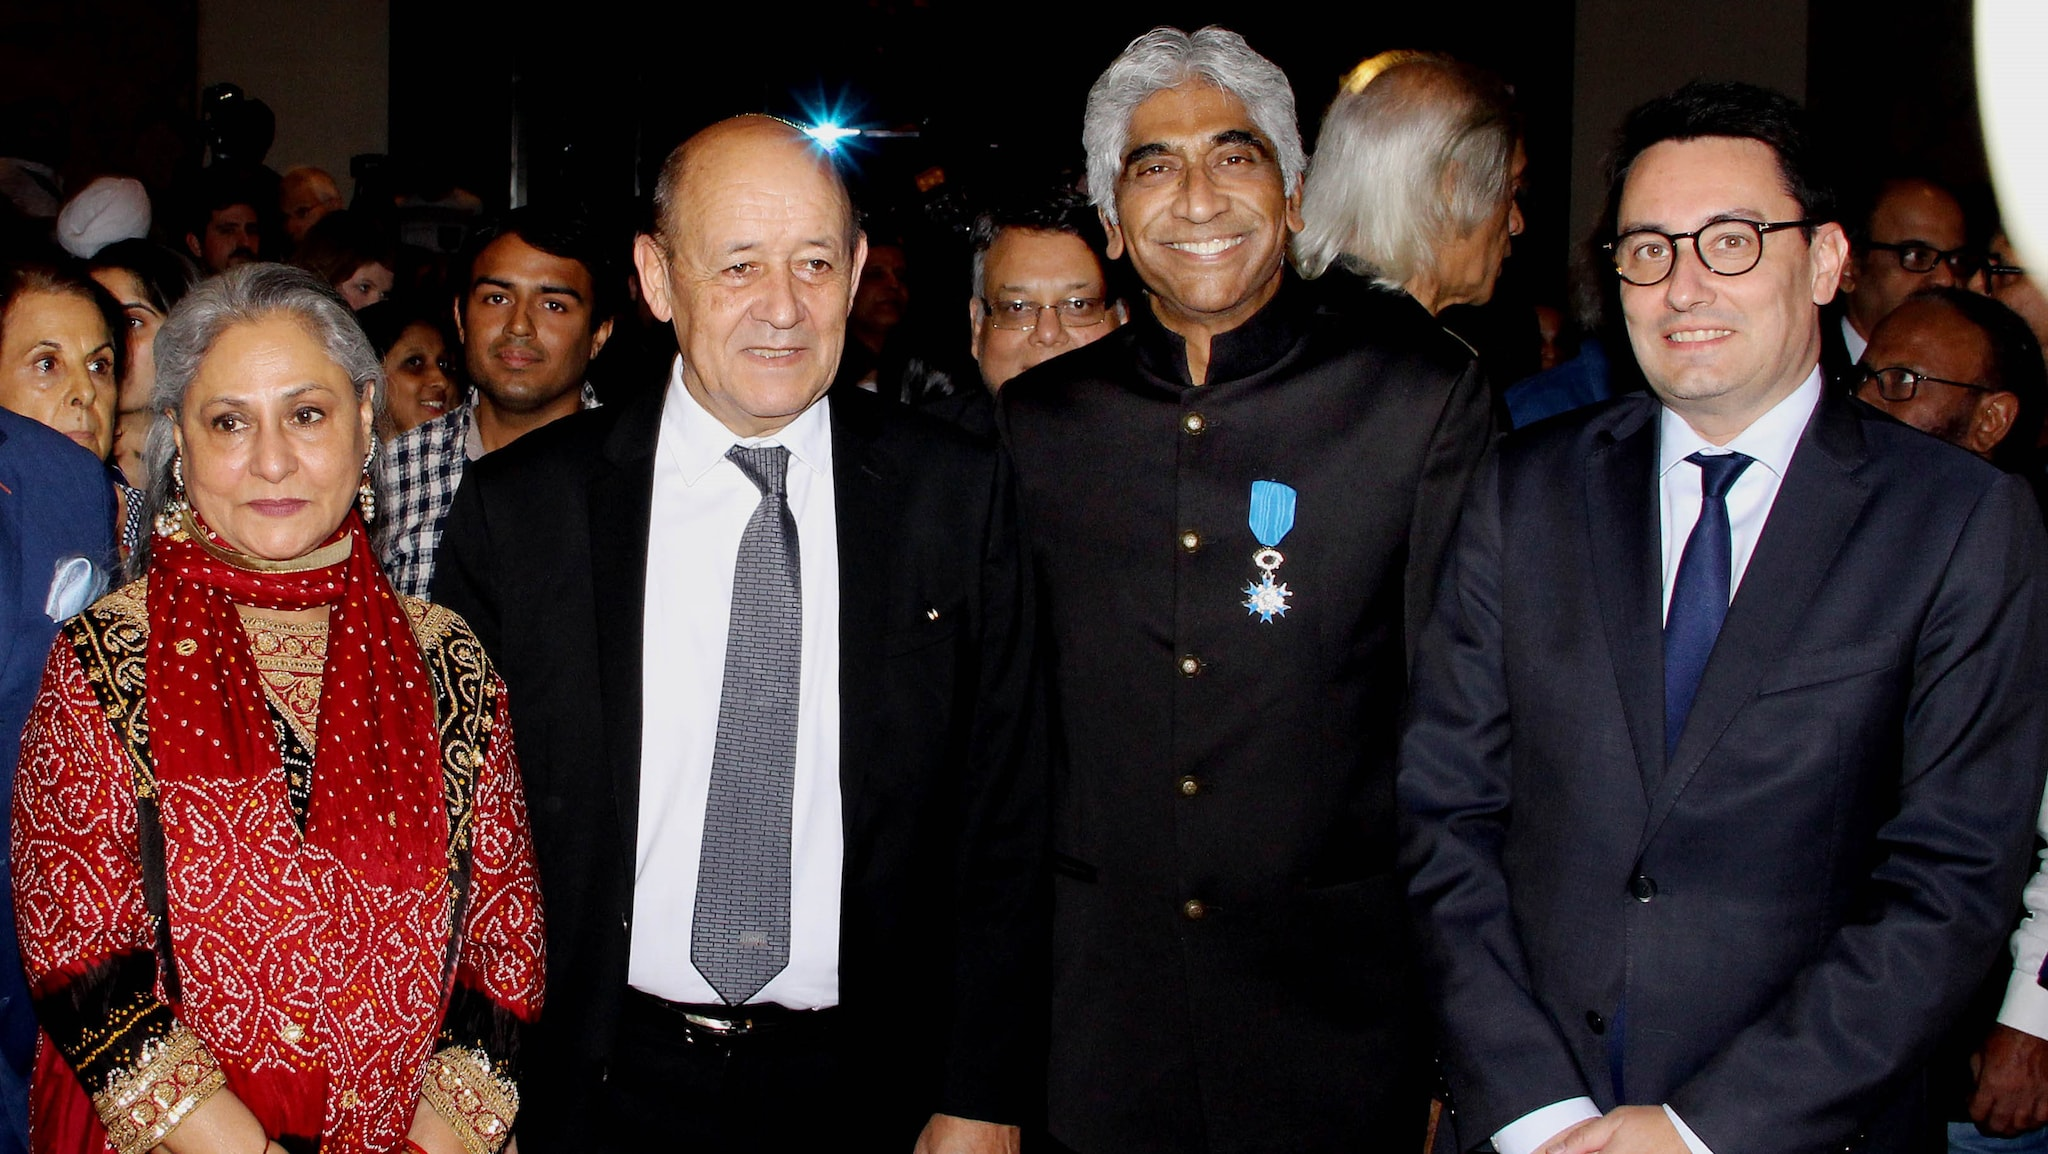 Amritraj receives the Chevalier de L'Ordre des Arts et des Lettres medal from France. (L to R) Jaya Bachchan, French Foreign Minister Jean-Yves Le Drian, Ashok Amritraj, and French Ambassador to India Alexandre Ziegler.